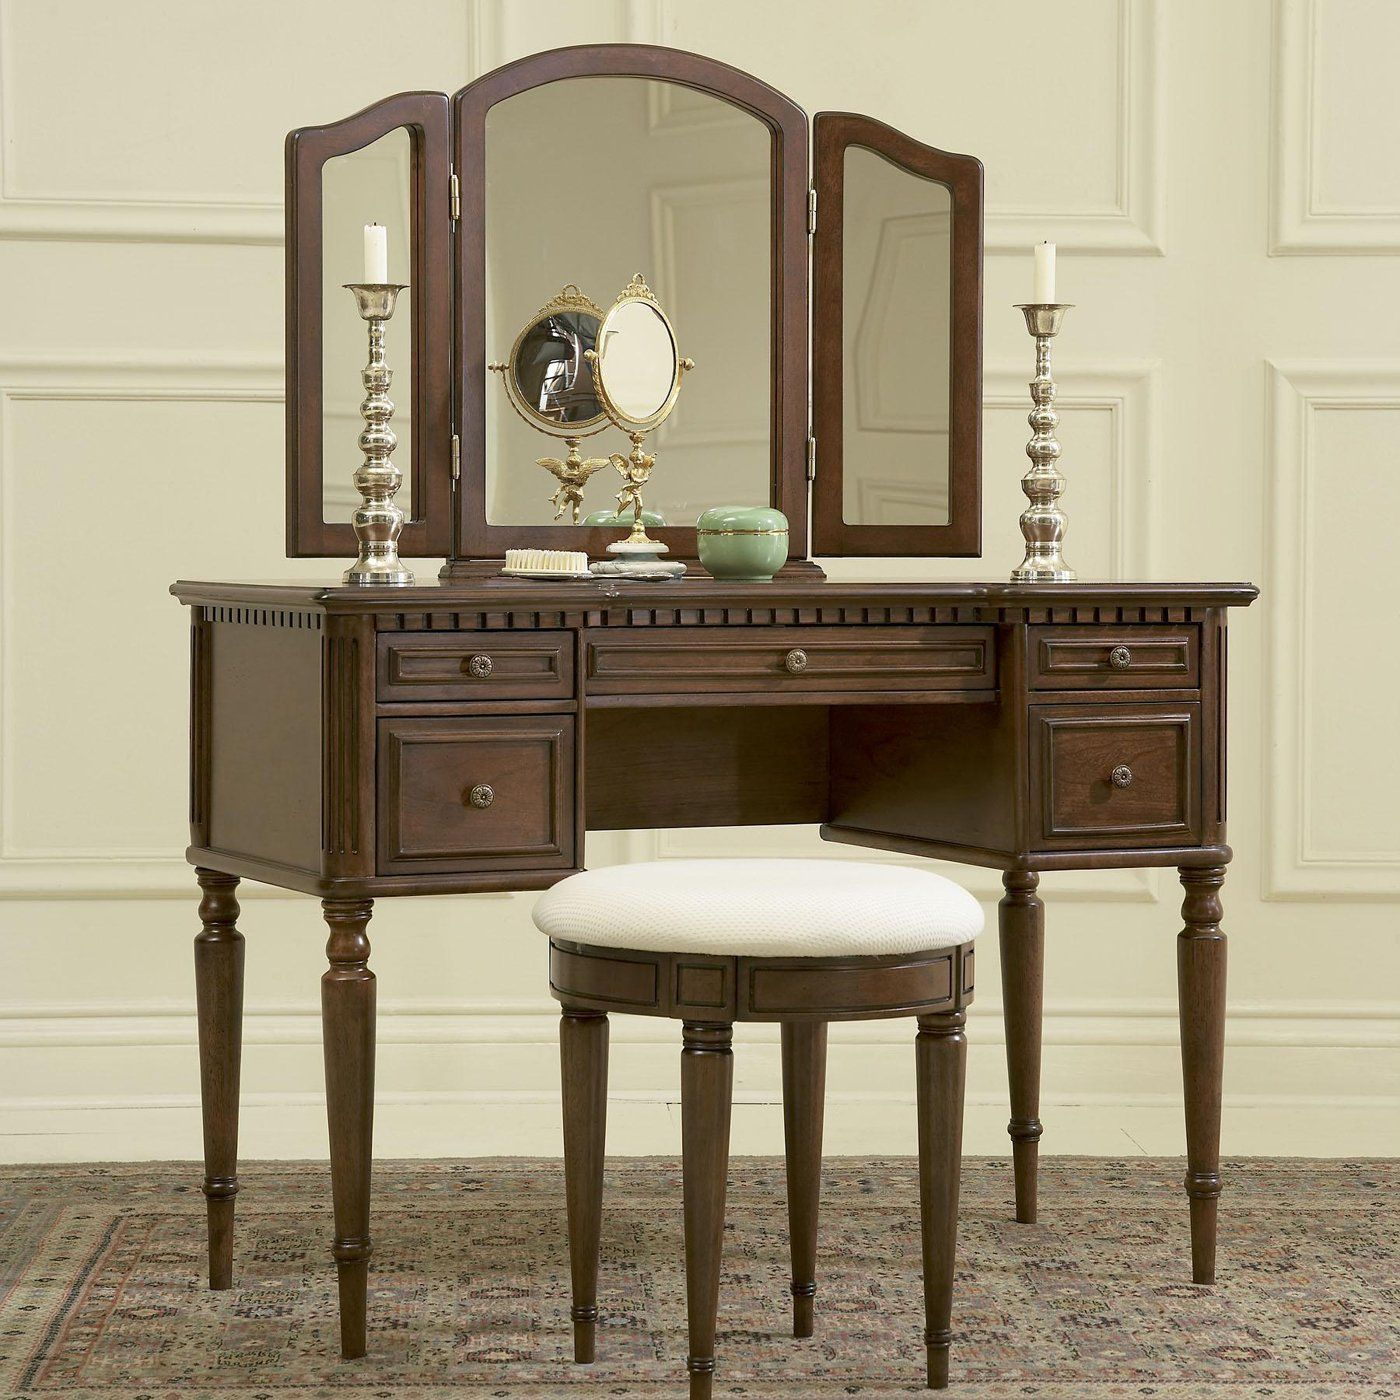 Powell 429 290 warm cherry mirror bench bedroom vanity - Bedroom vanity mirror with lights ...